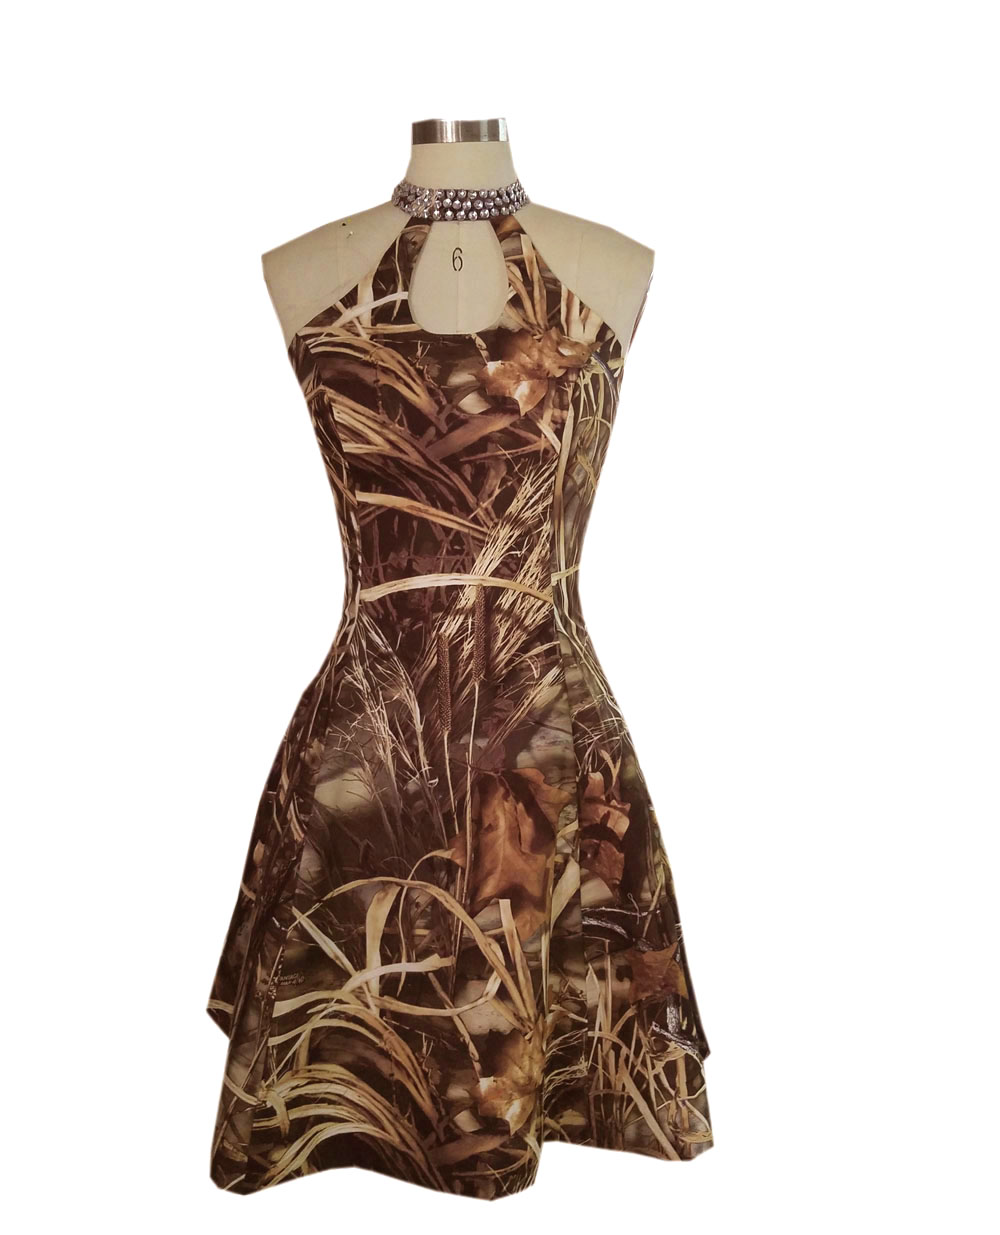 halter realtree max 4 wetland camo formal short   cocktail     dresses   2017 party   dress   new style custom make size 0 or plus size